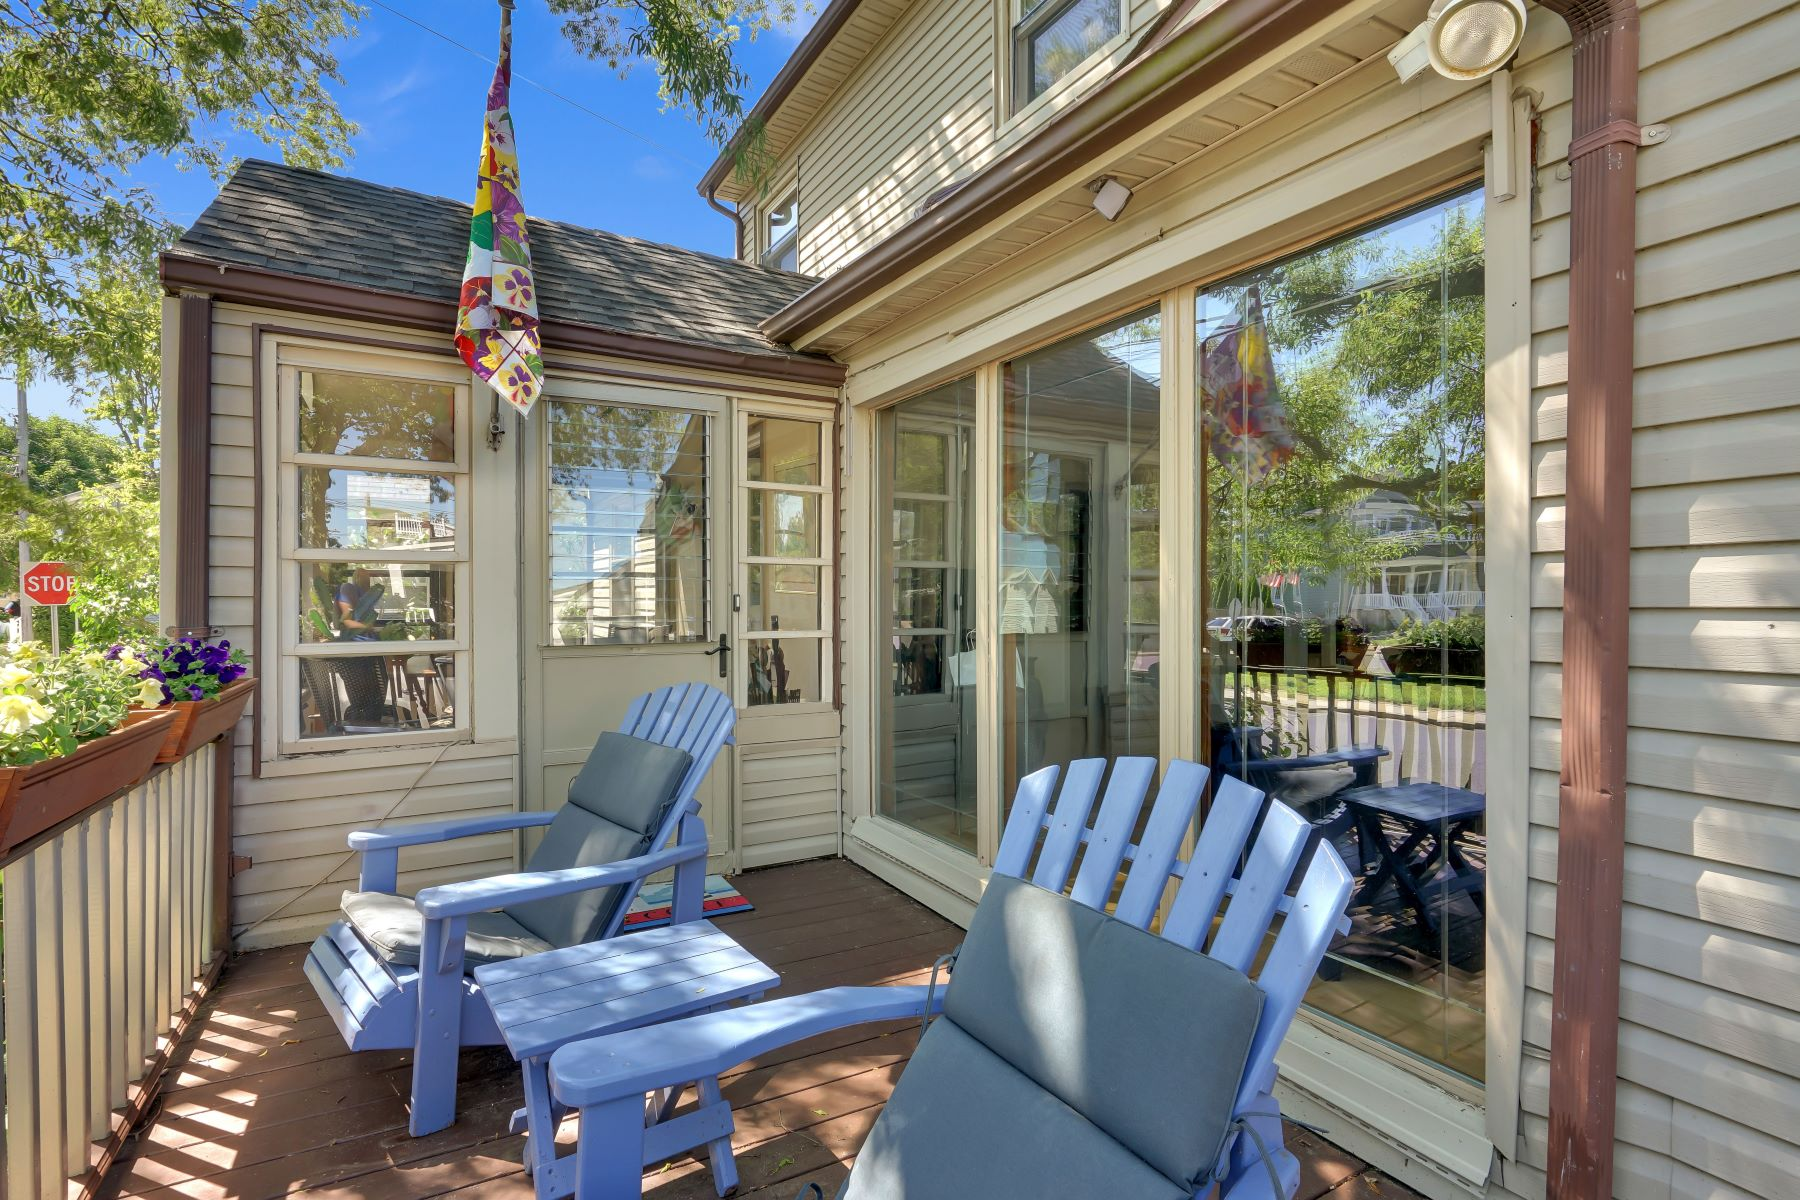 Single Family Homes for Sale at Charming Custom Home 504 17th Avenue, Lake Como, New Jersey 07719 United States